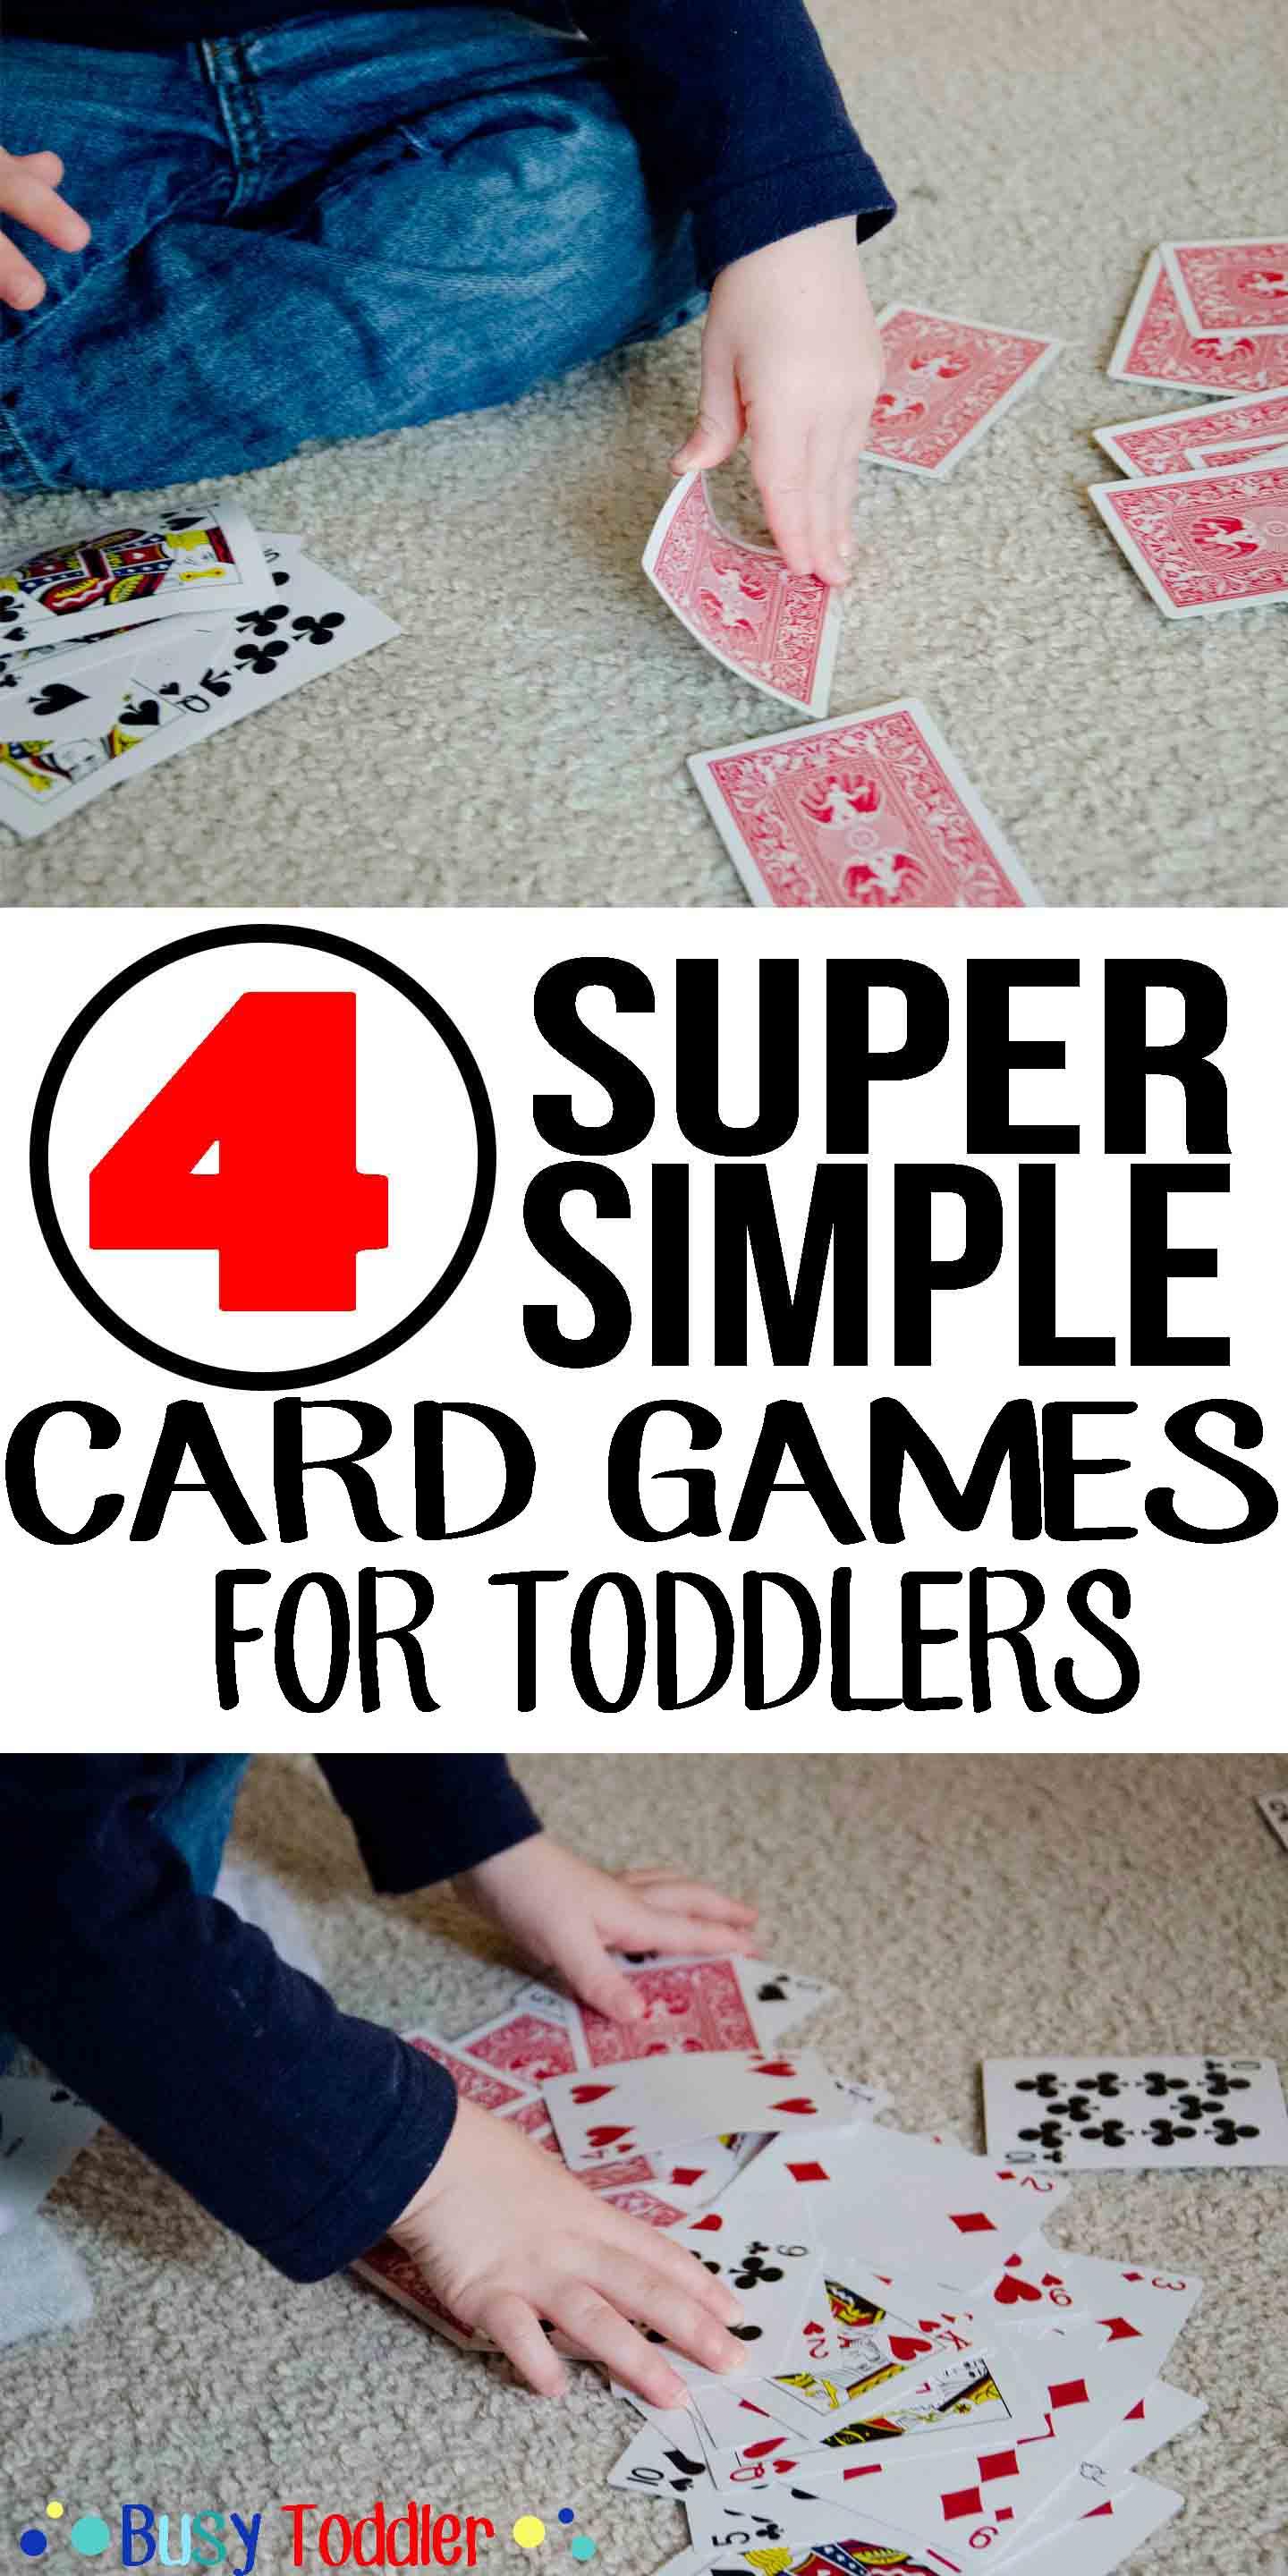 CARD GAMES: 4 super simple card games to play with your toddler